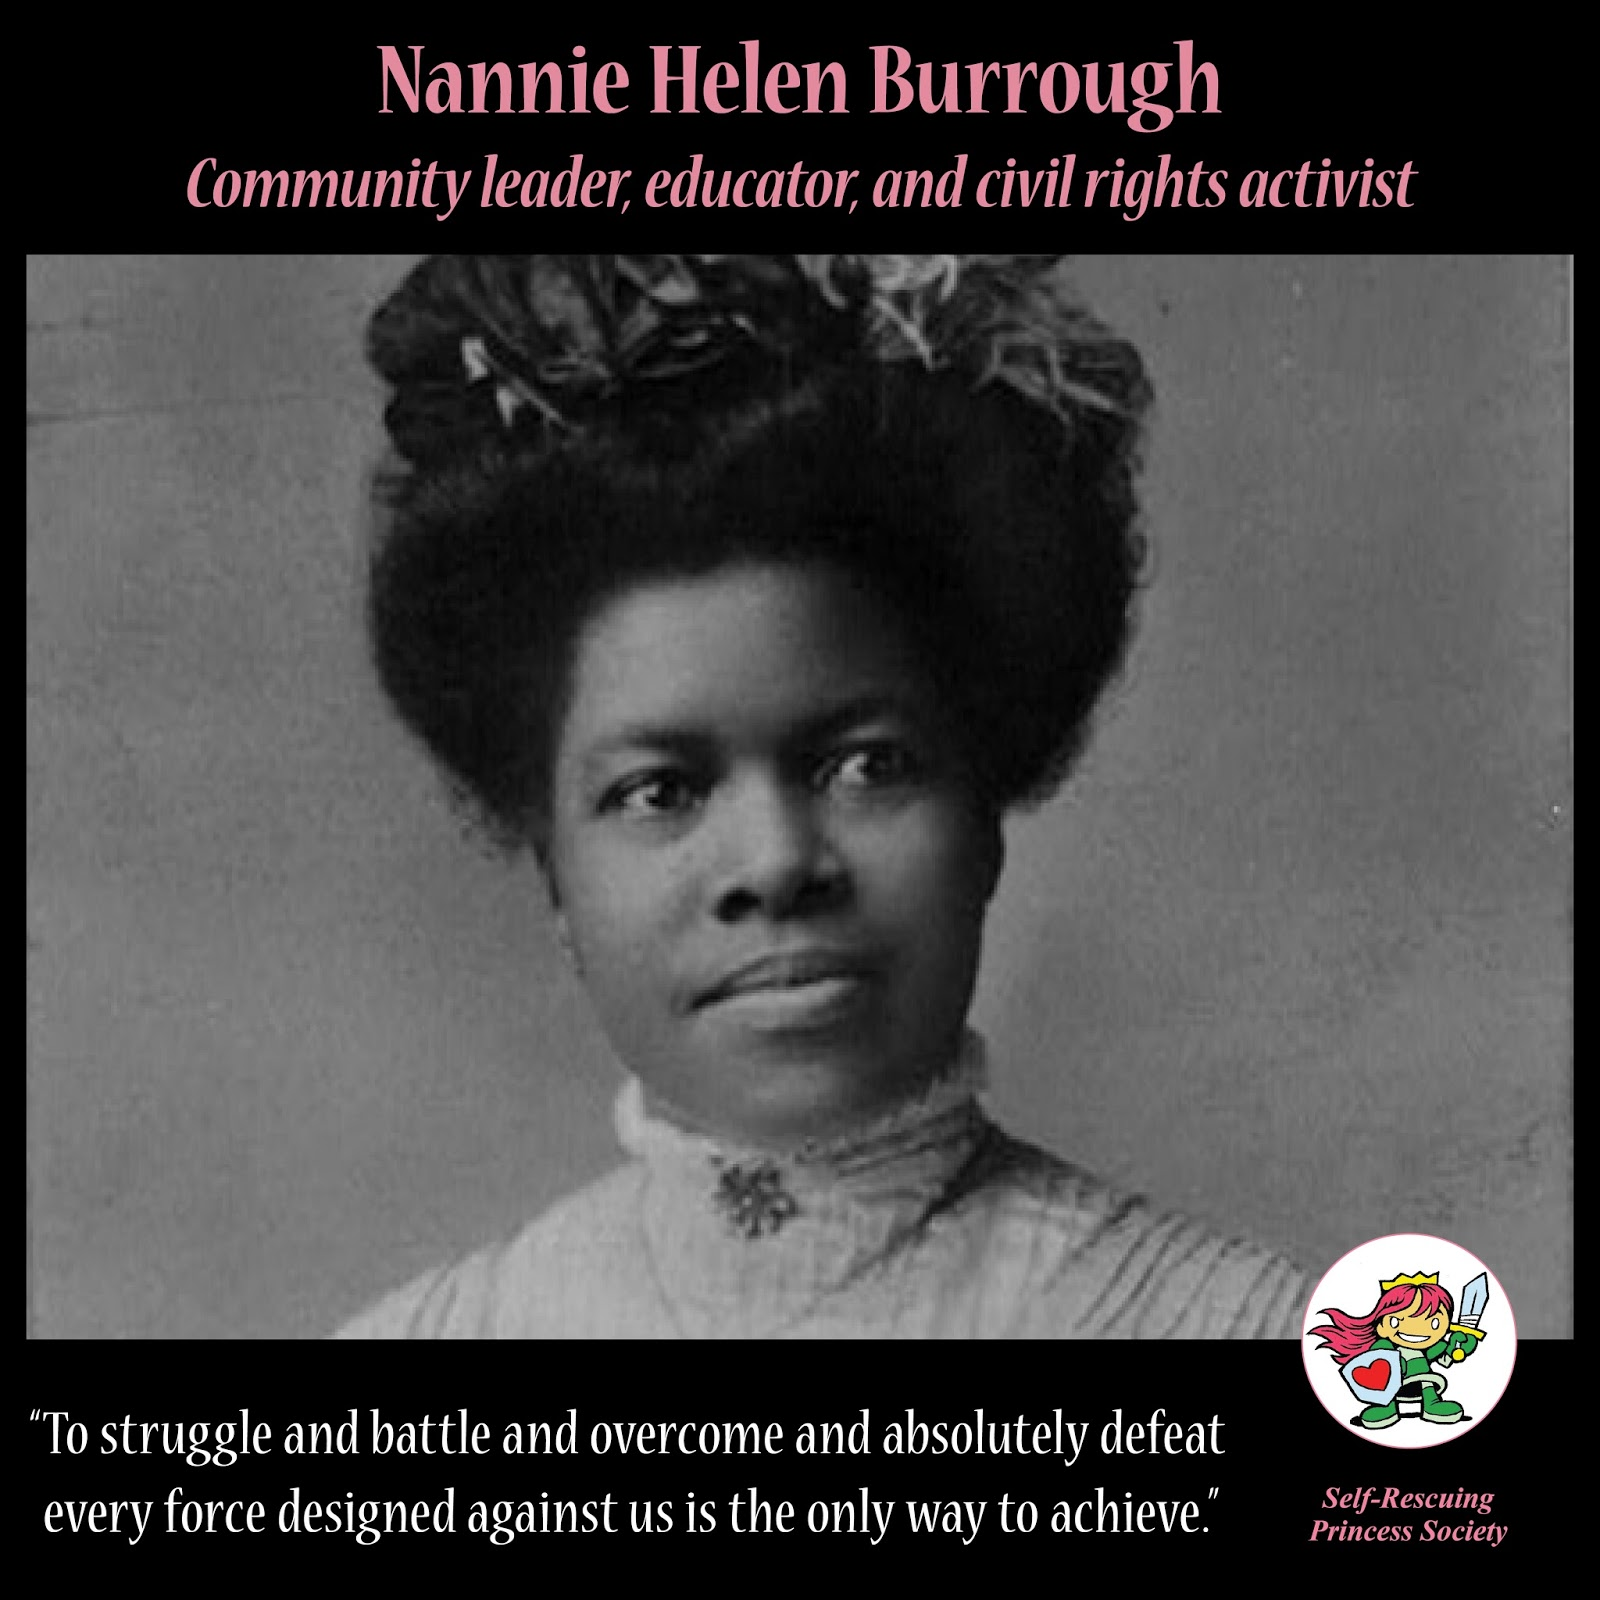 womens history month nannie helen burroughs self